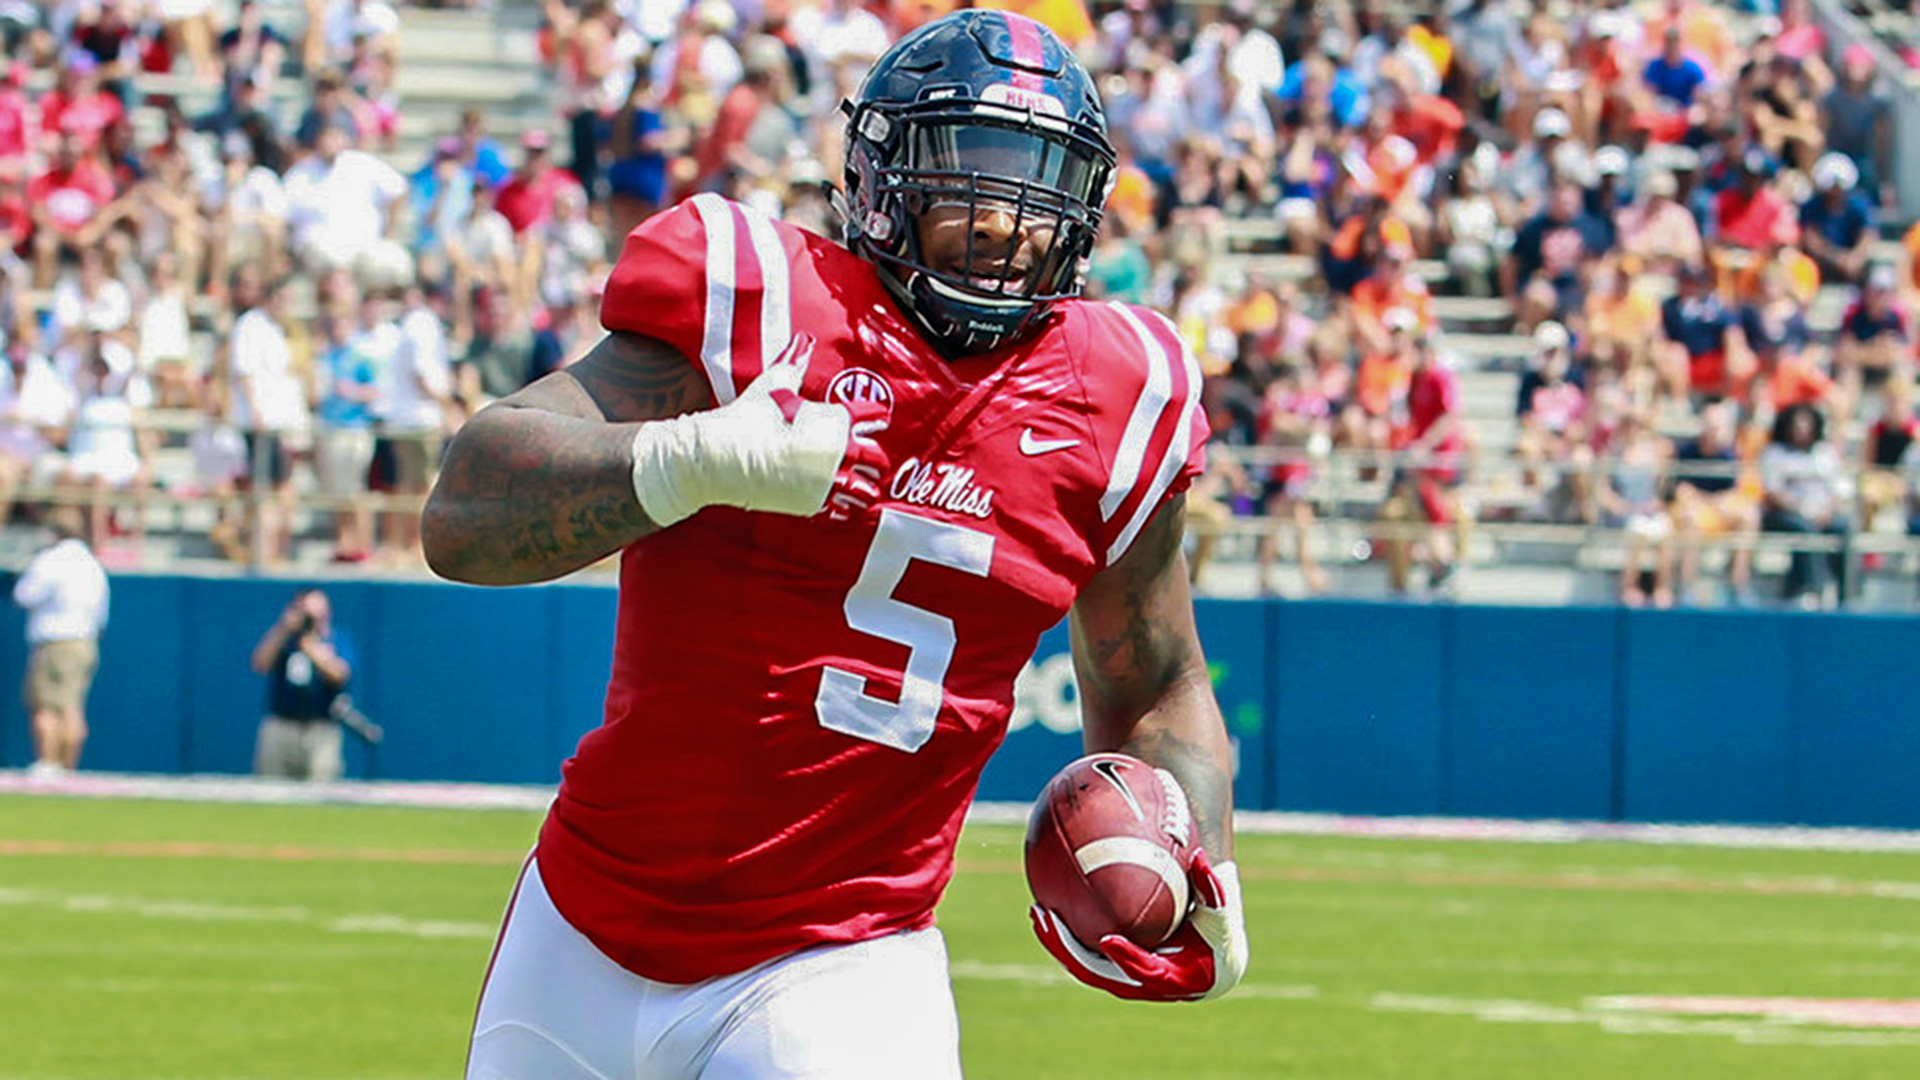 Draft Blog - Dallas Cowboys 2016 NFL Draft Target: DT Robert Nkemdiche